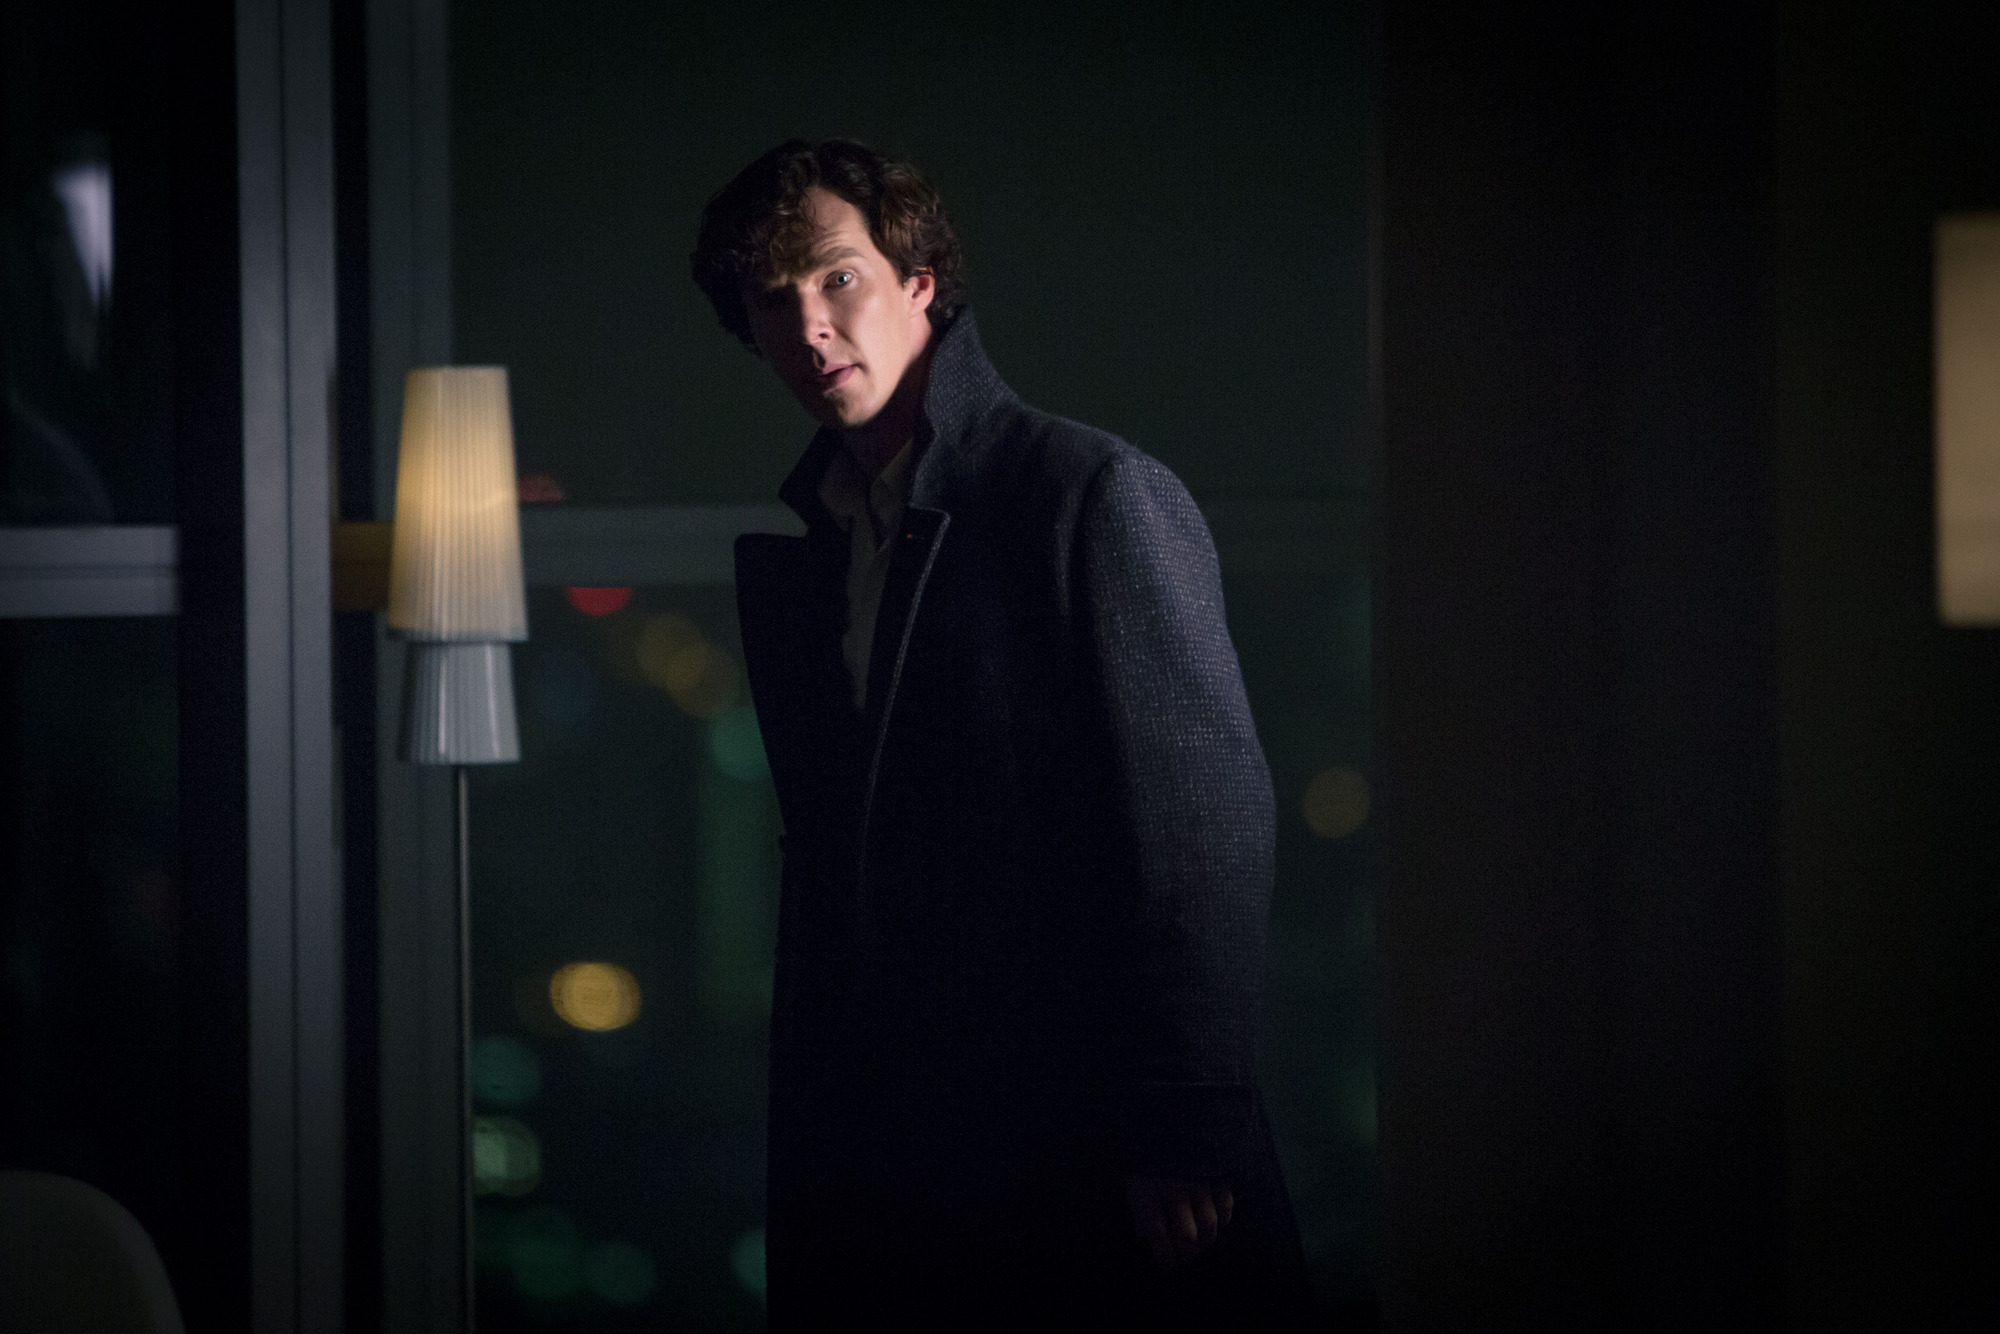 http://theconsultingdetectivesblog.files.wordpress.com/2014/01/5277894-low_res-sherlock.jpg